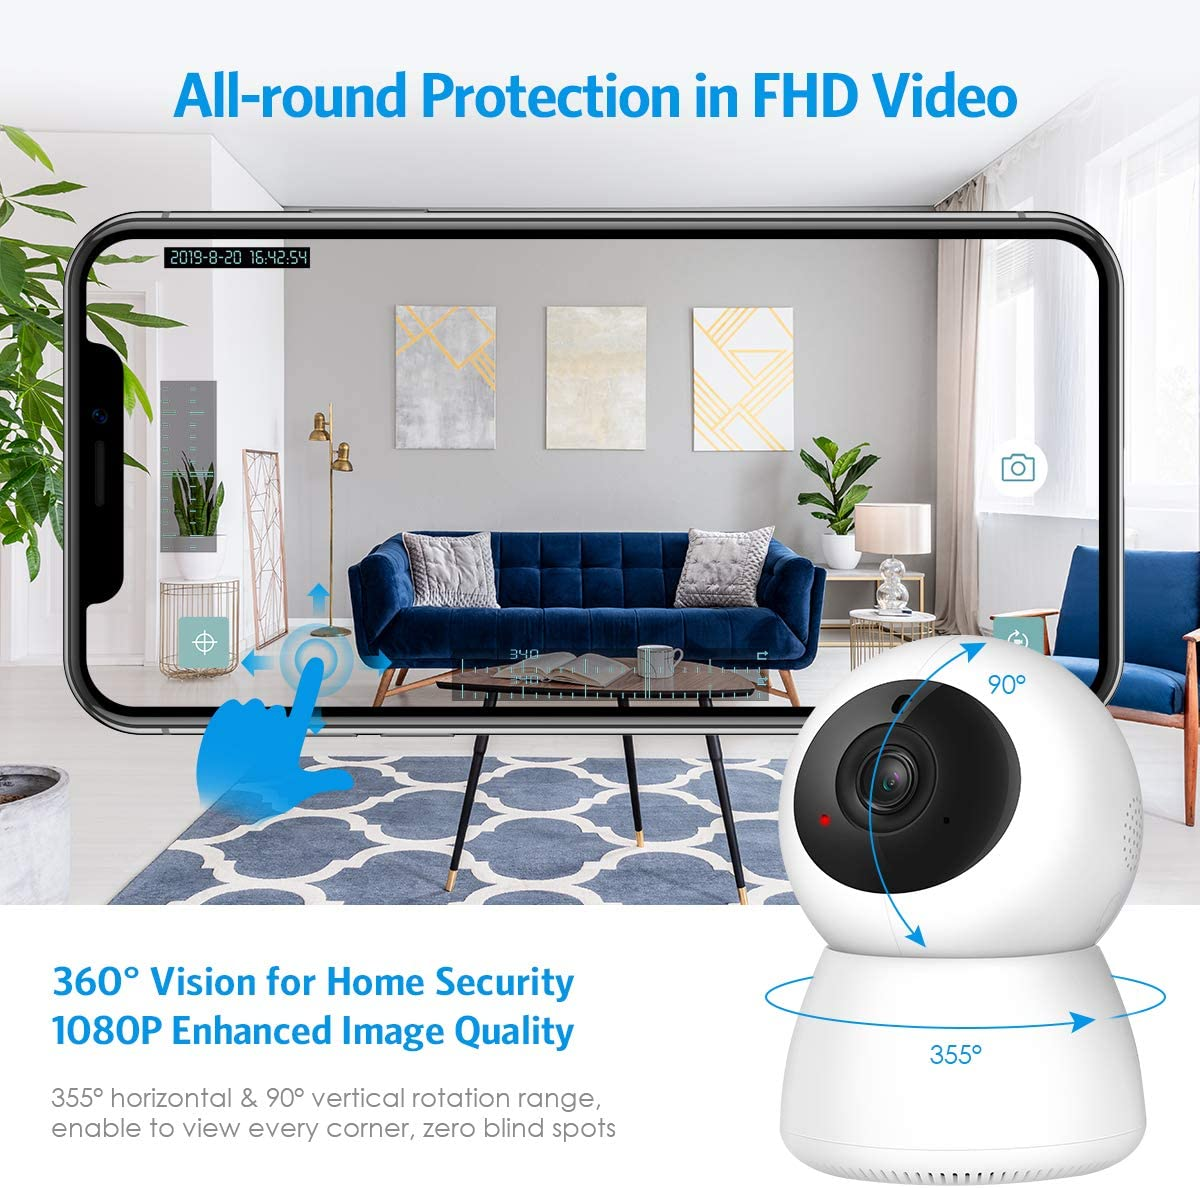 Upgraded Criacr 1080p WiFi Home Security Camera